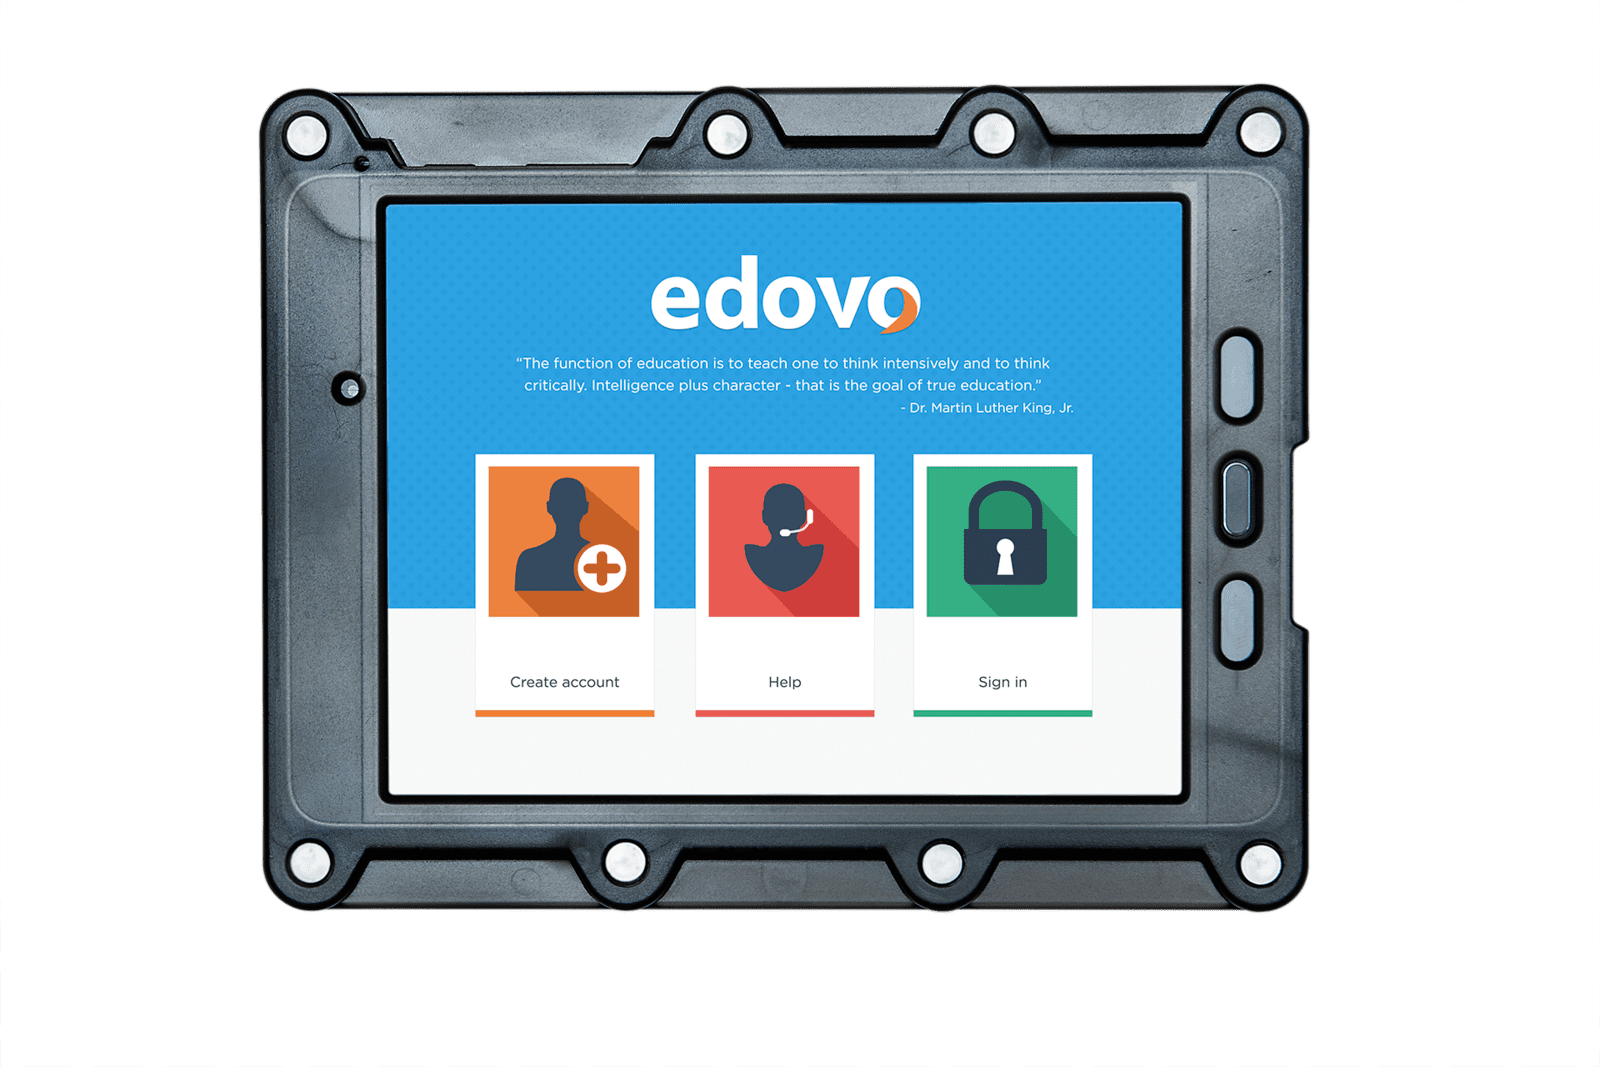 Edovo's tablets are the perfect solution for advanced and secure inmate tablet technology.